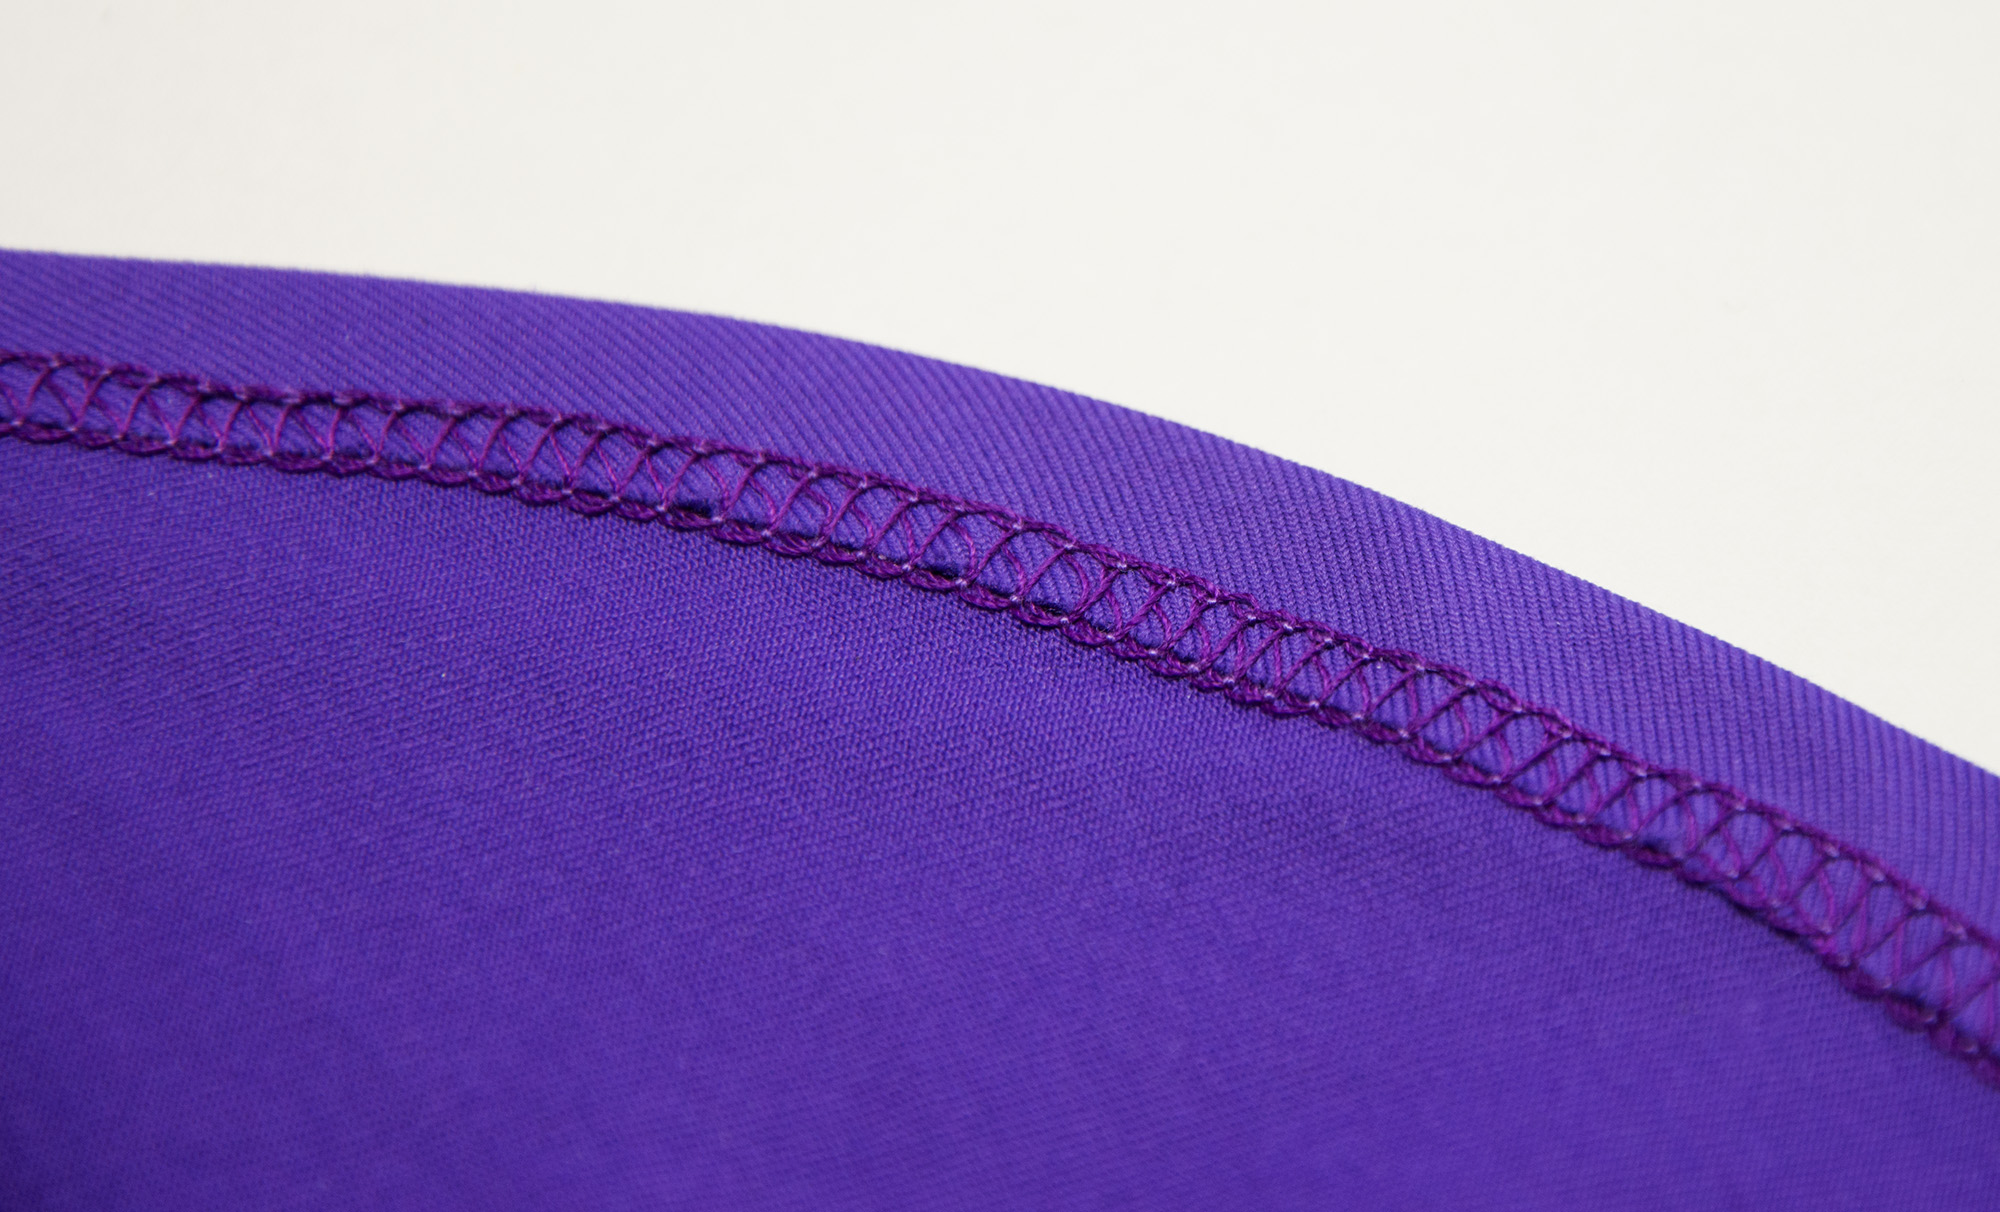 The ultimate guide to coverstitching (including tips from a pro)